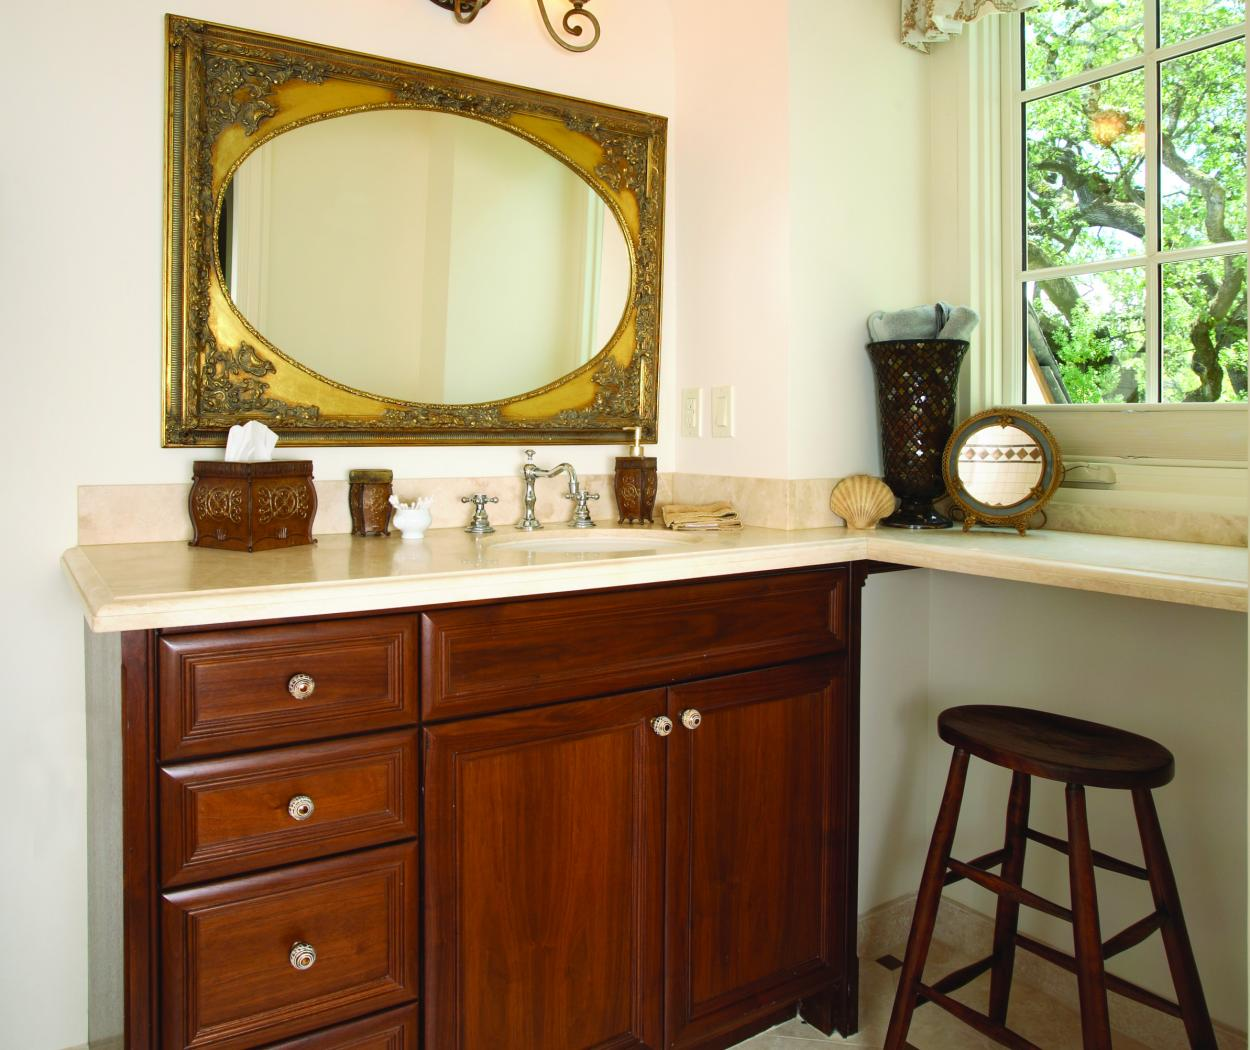 Transitional Walnut Bathroom Vanity with a Beautiful Marble Countertop and Decorative Knobs